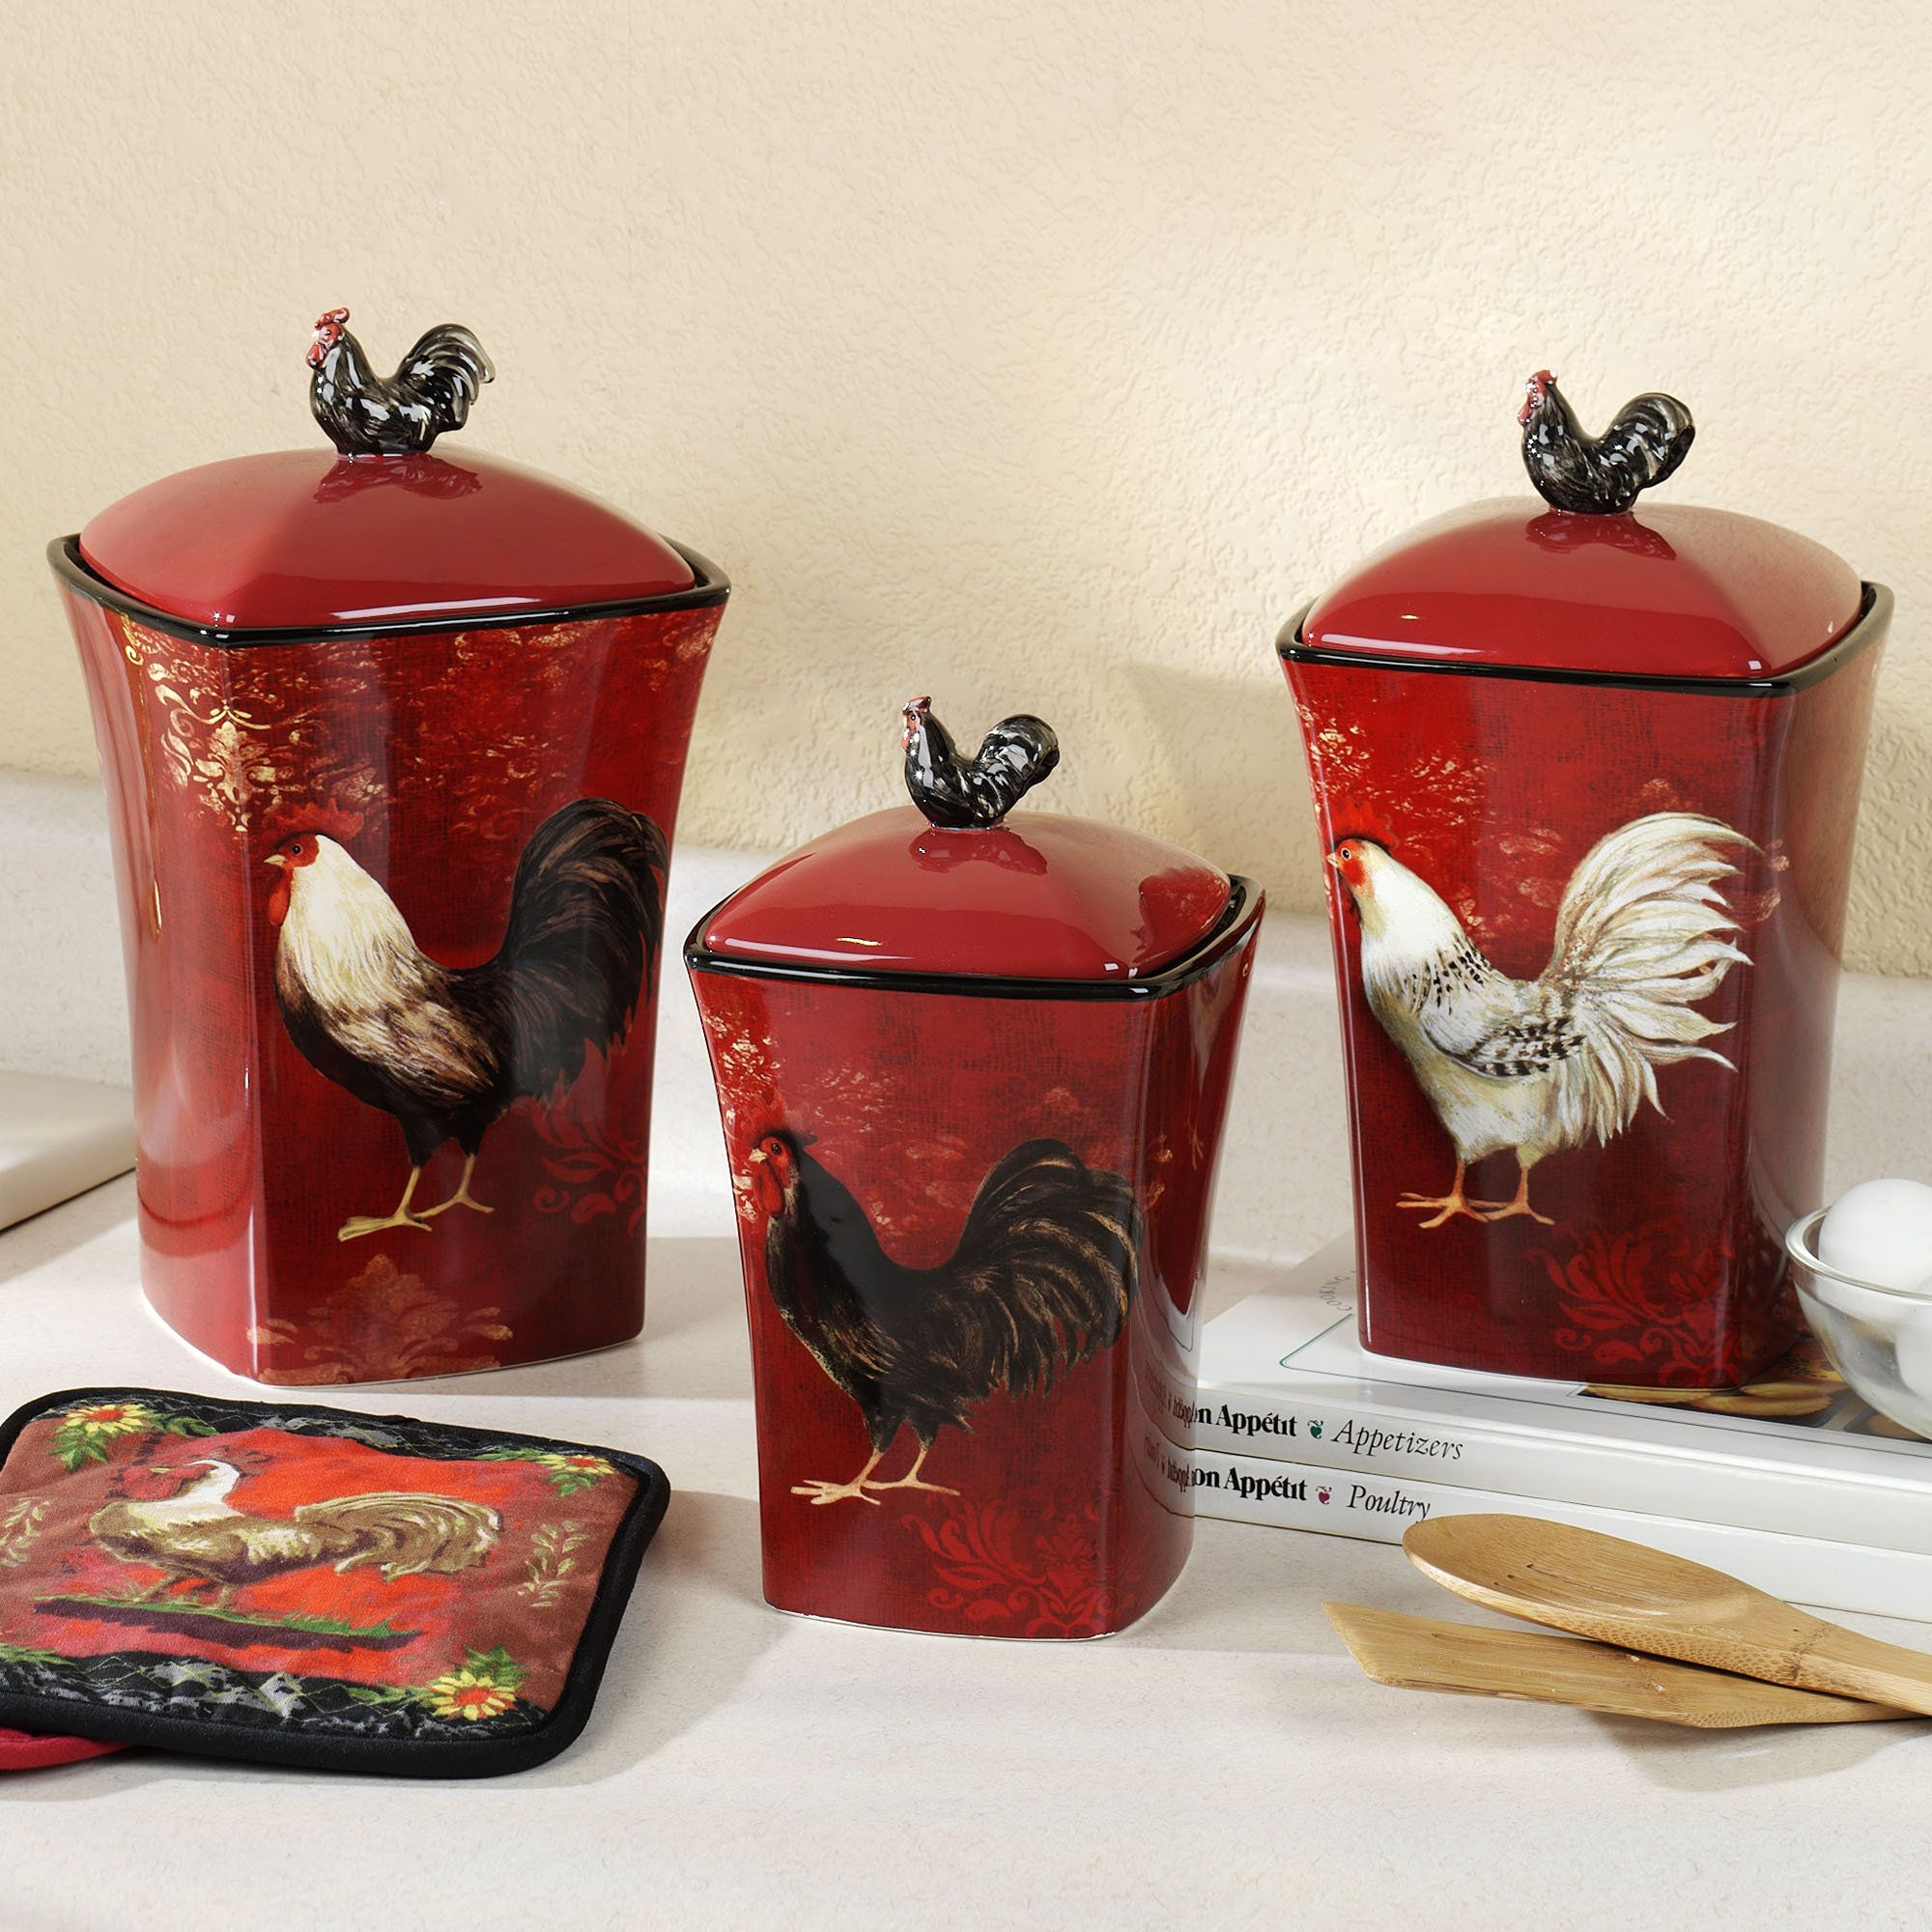 decorative kitchen canister sets kitchen theme decor sets images15 chicken kitchen decor pinterest rooster kitchen decor 3378